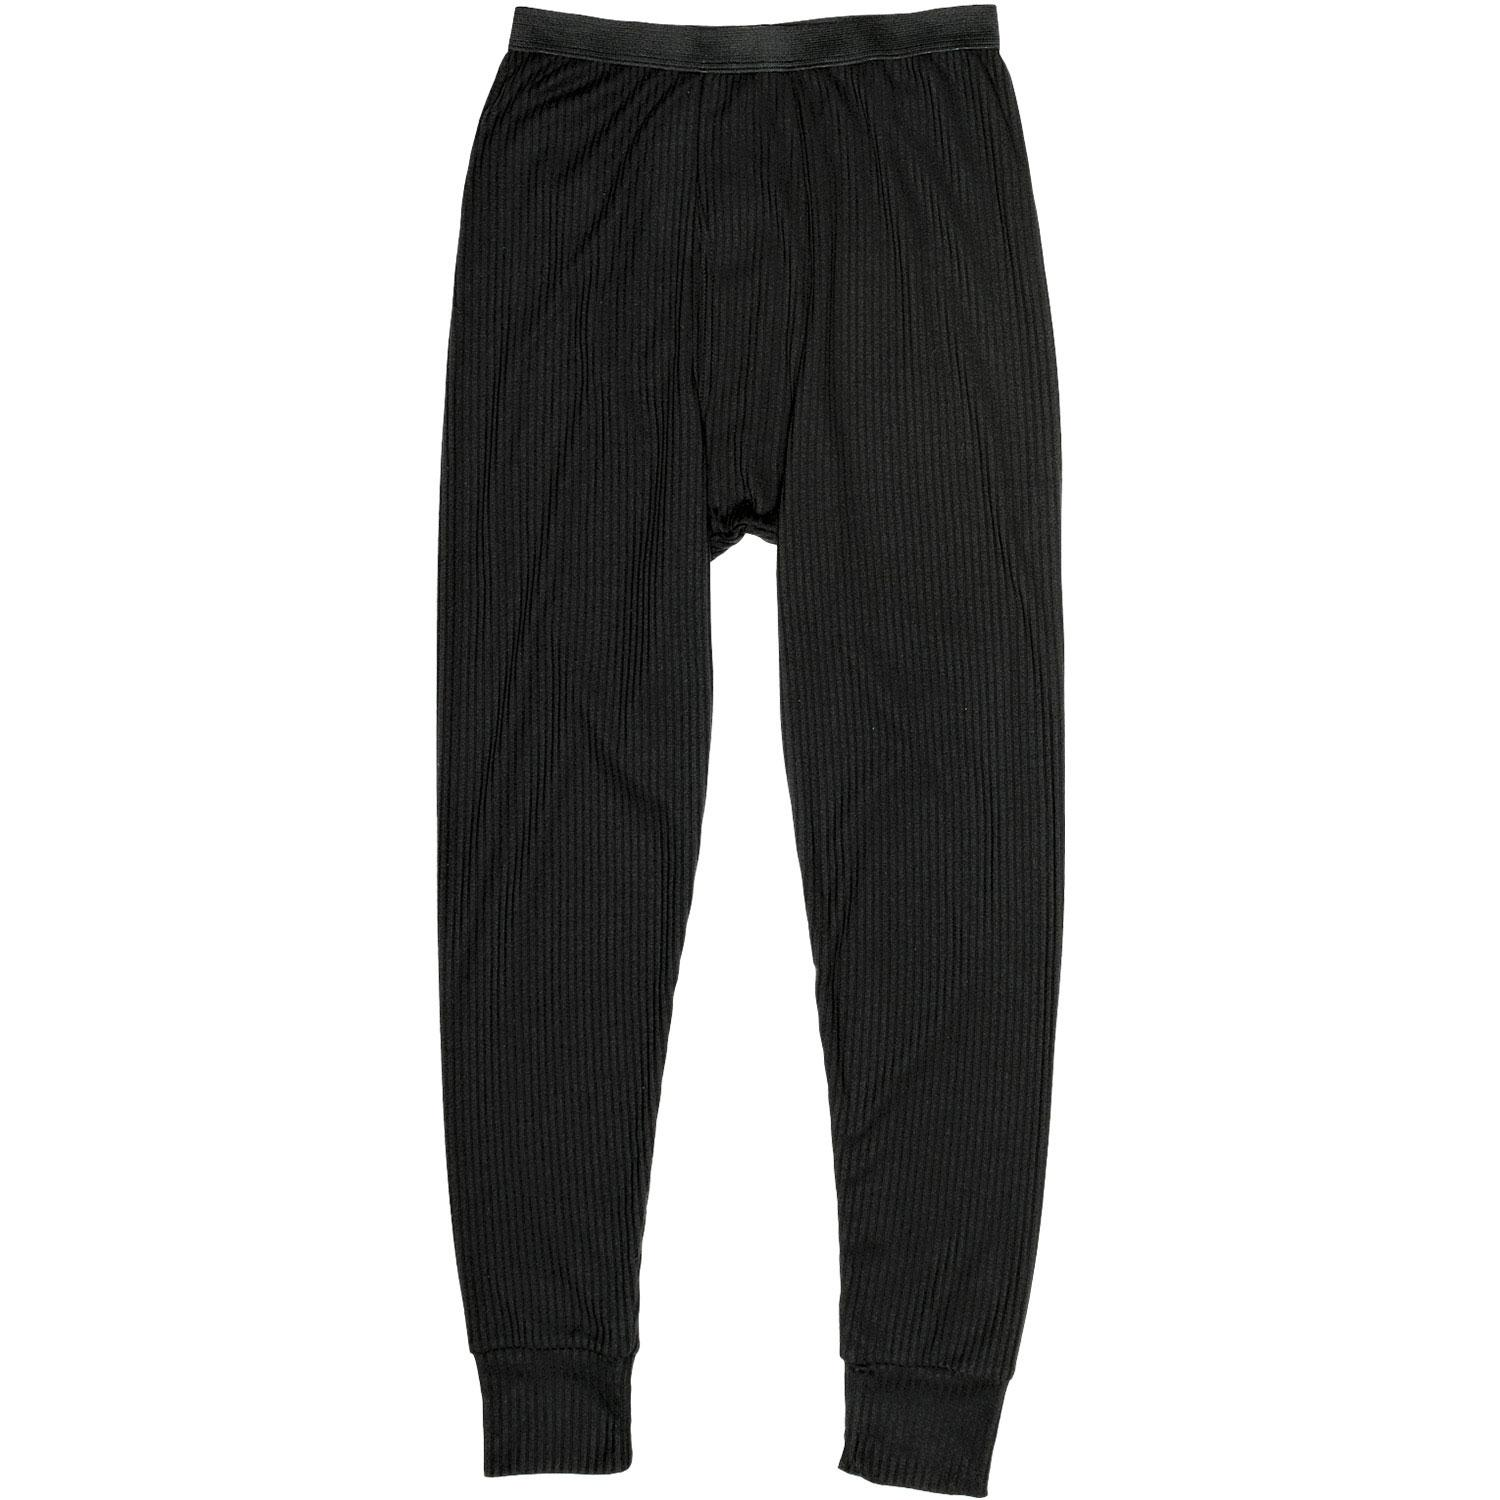 Black Thermal Long John Pants